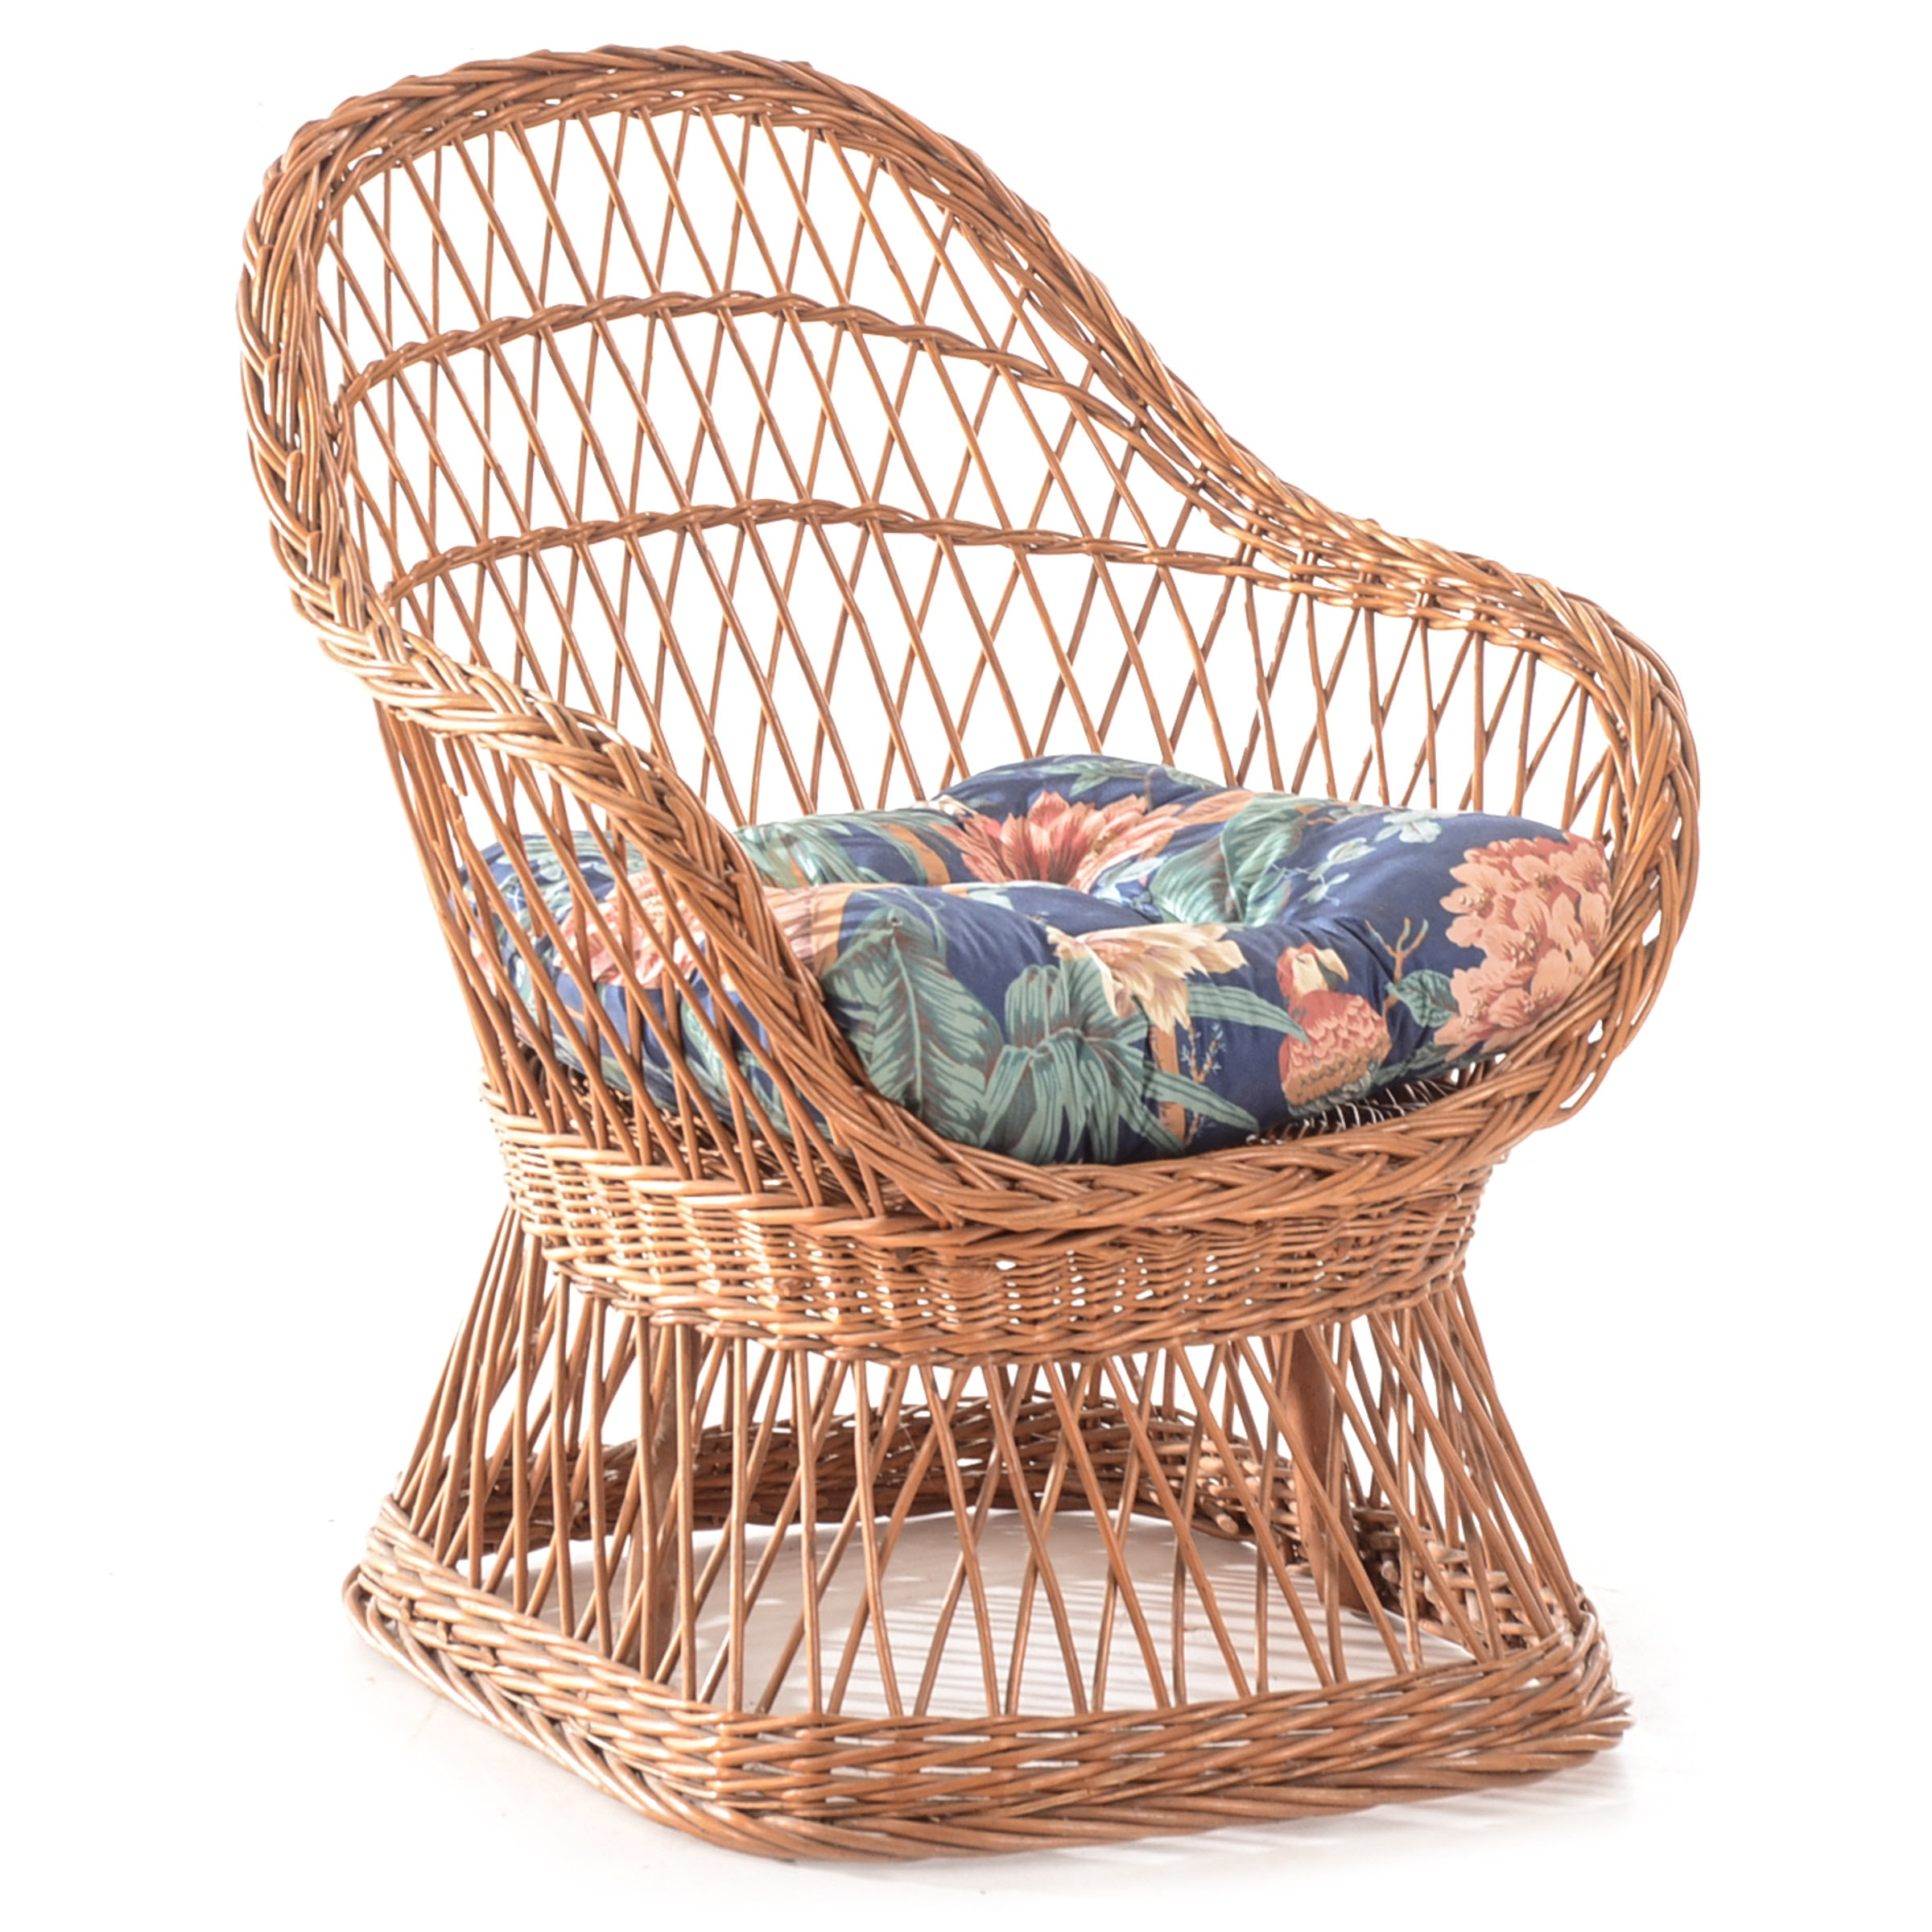 Natural Wicker Pedestal Based Chair